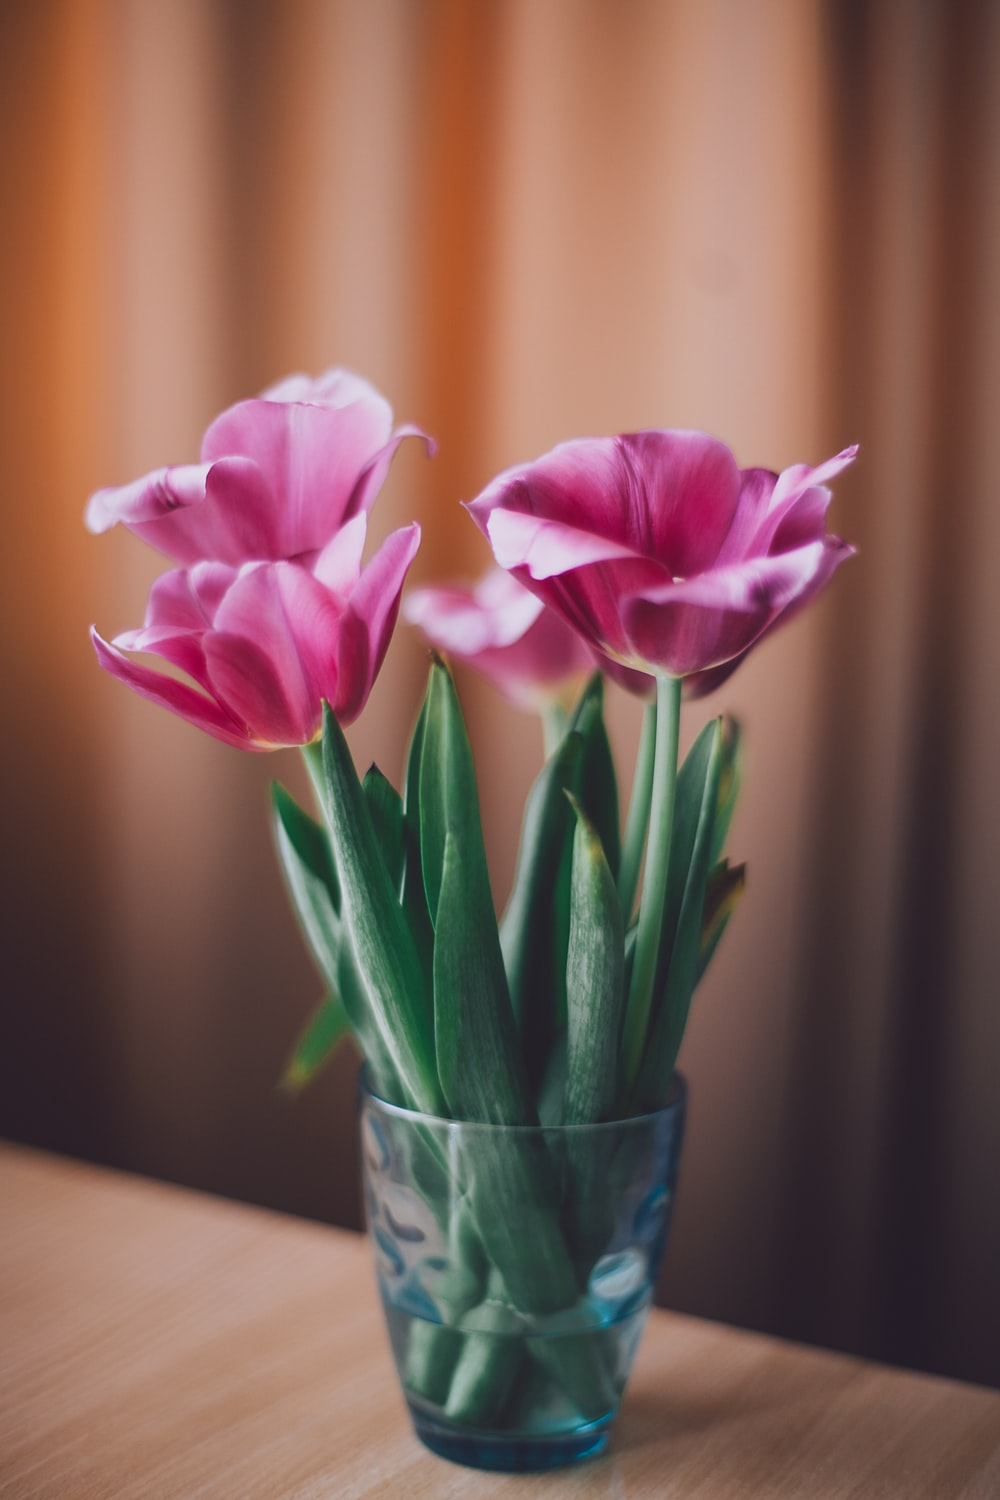 pink petaled flowers in vase at table